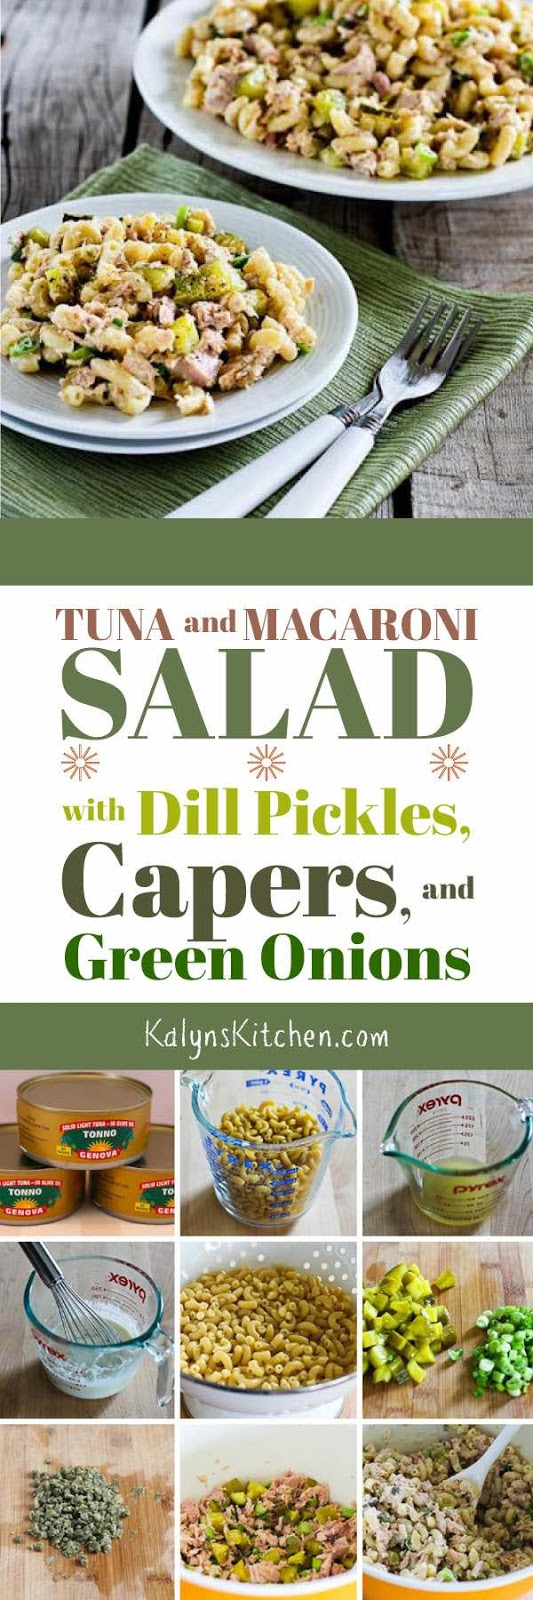 Tuna and Macaroni Salad with Dill Pickles, Capers, and Green Onions ...